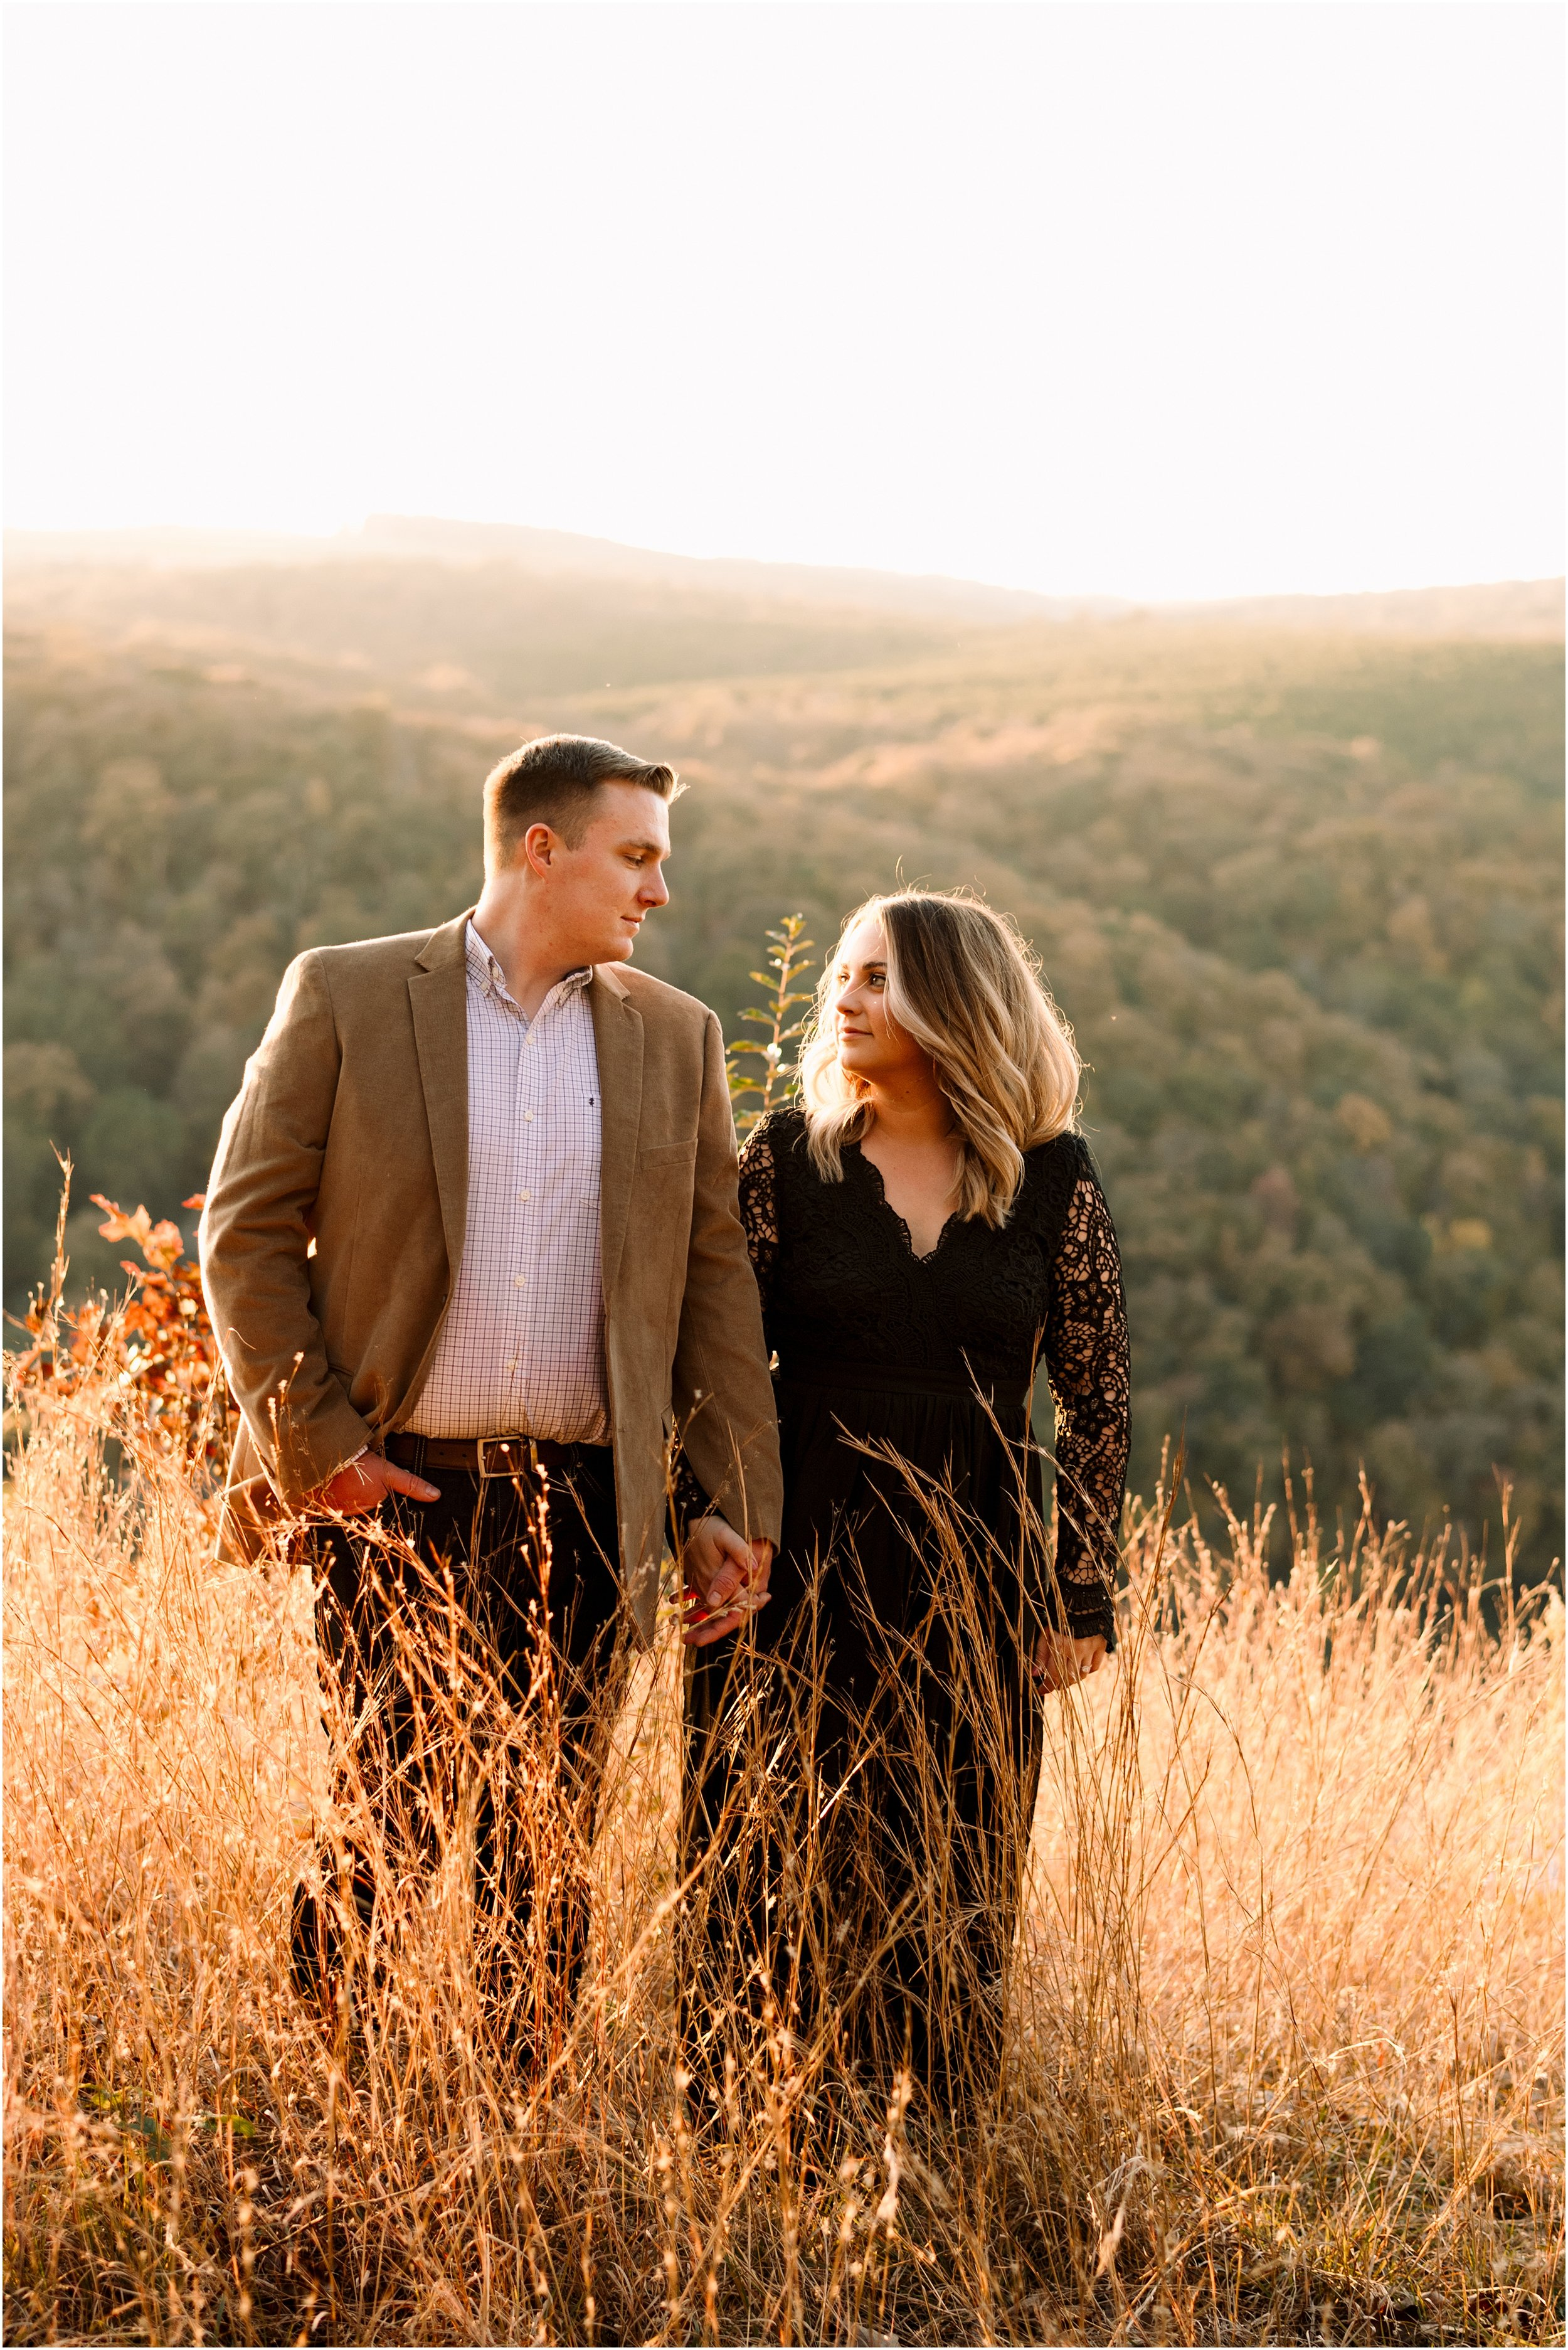 hannah leigh photography Engagement Session Lancaster PA_2321.jpg